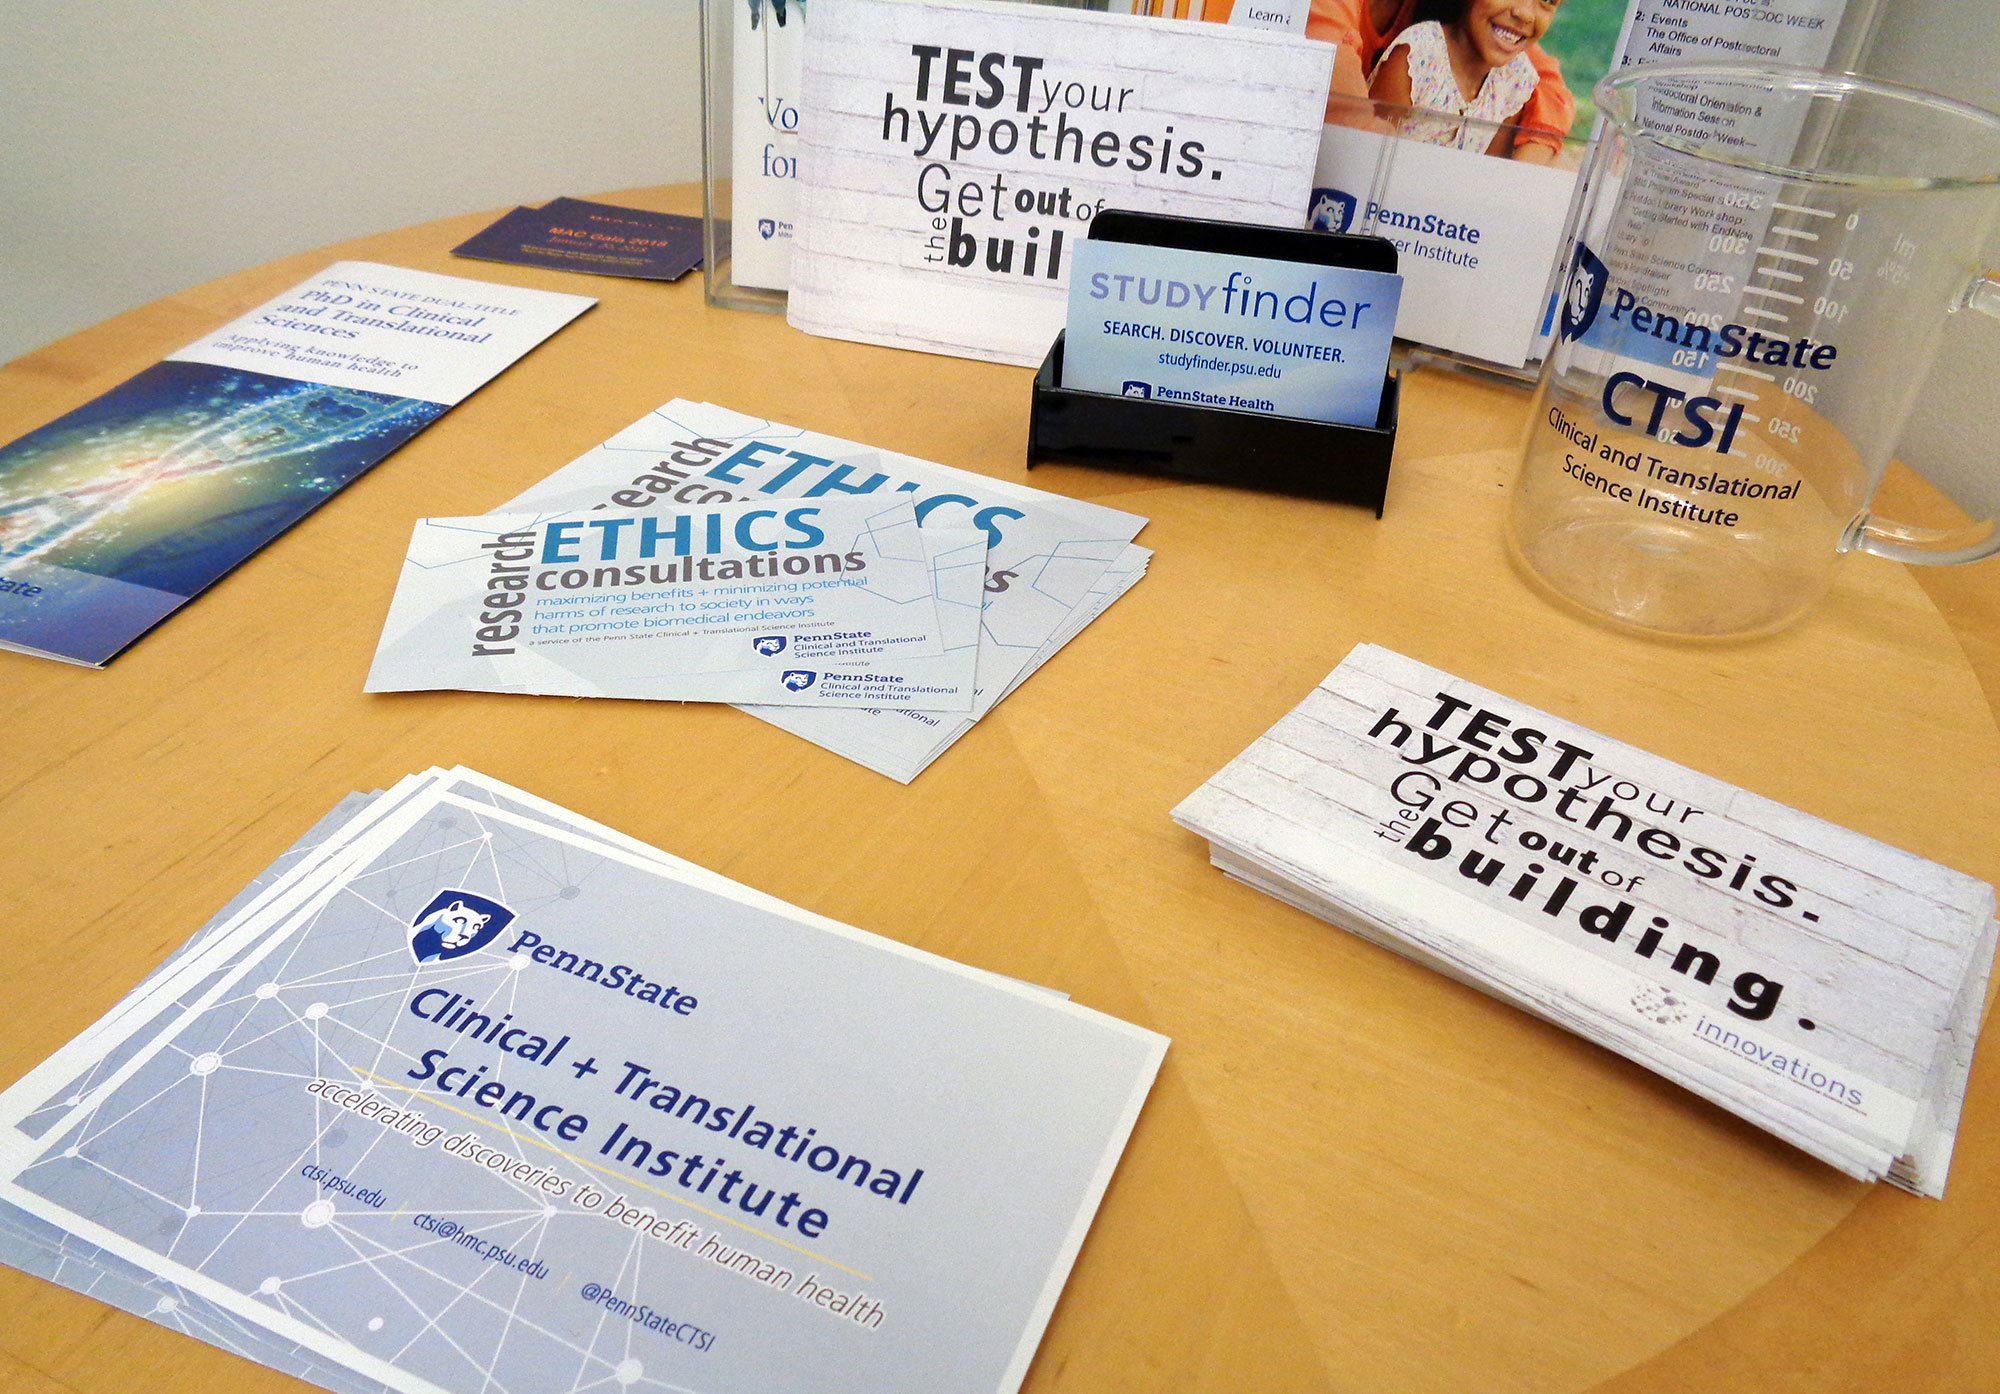 A promotional image for Penn State Clinical and Translational Science Institute shows a number of pamplets, cards and other items advertising CTSI services spread out on a table.